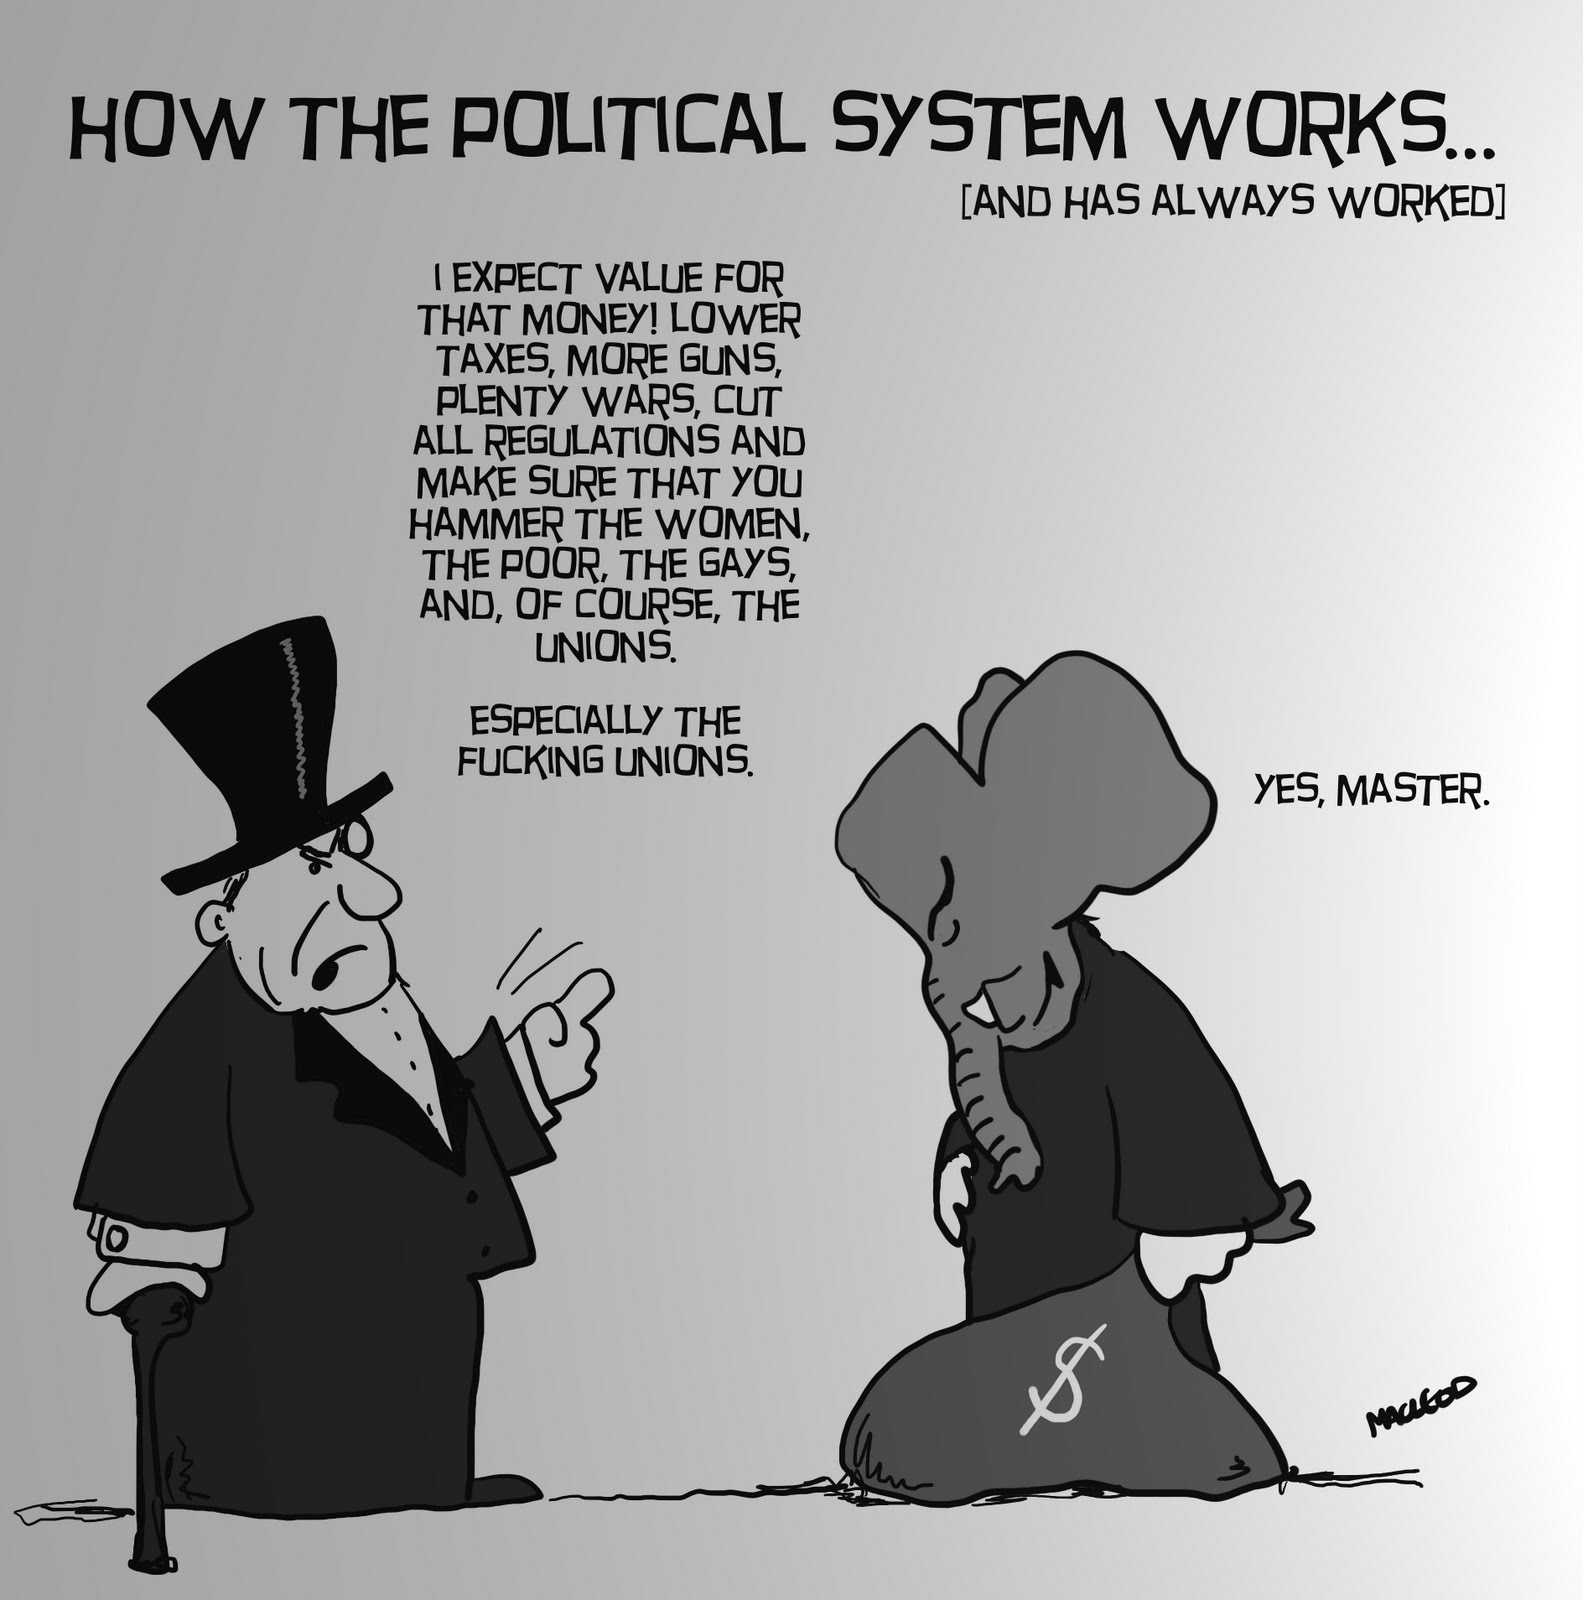 the american political system The american political system was subjected to severe strains in the twentieth century: the need to mobilise for two world wars, the depression of the 1930s, the changing role of government since the second world war, the.